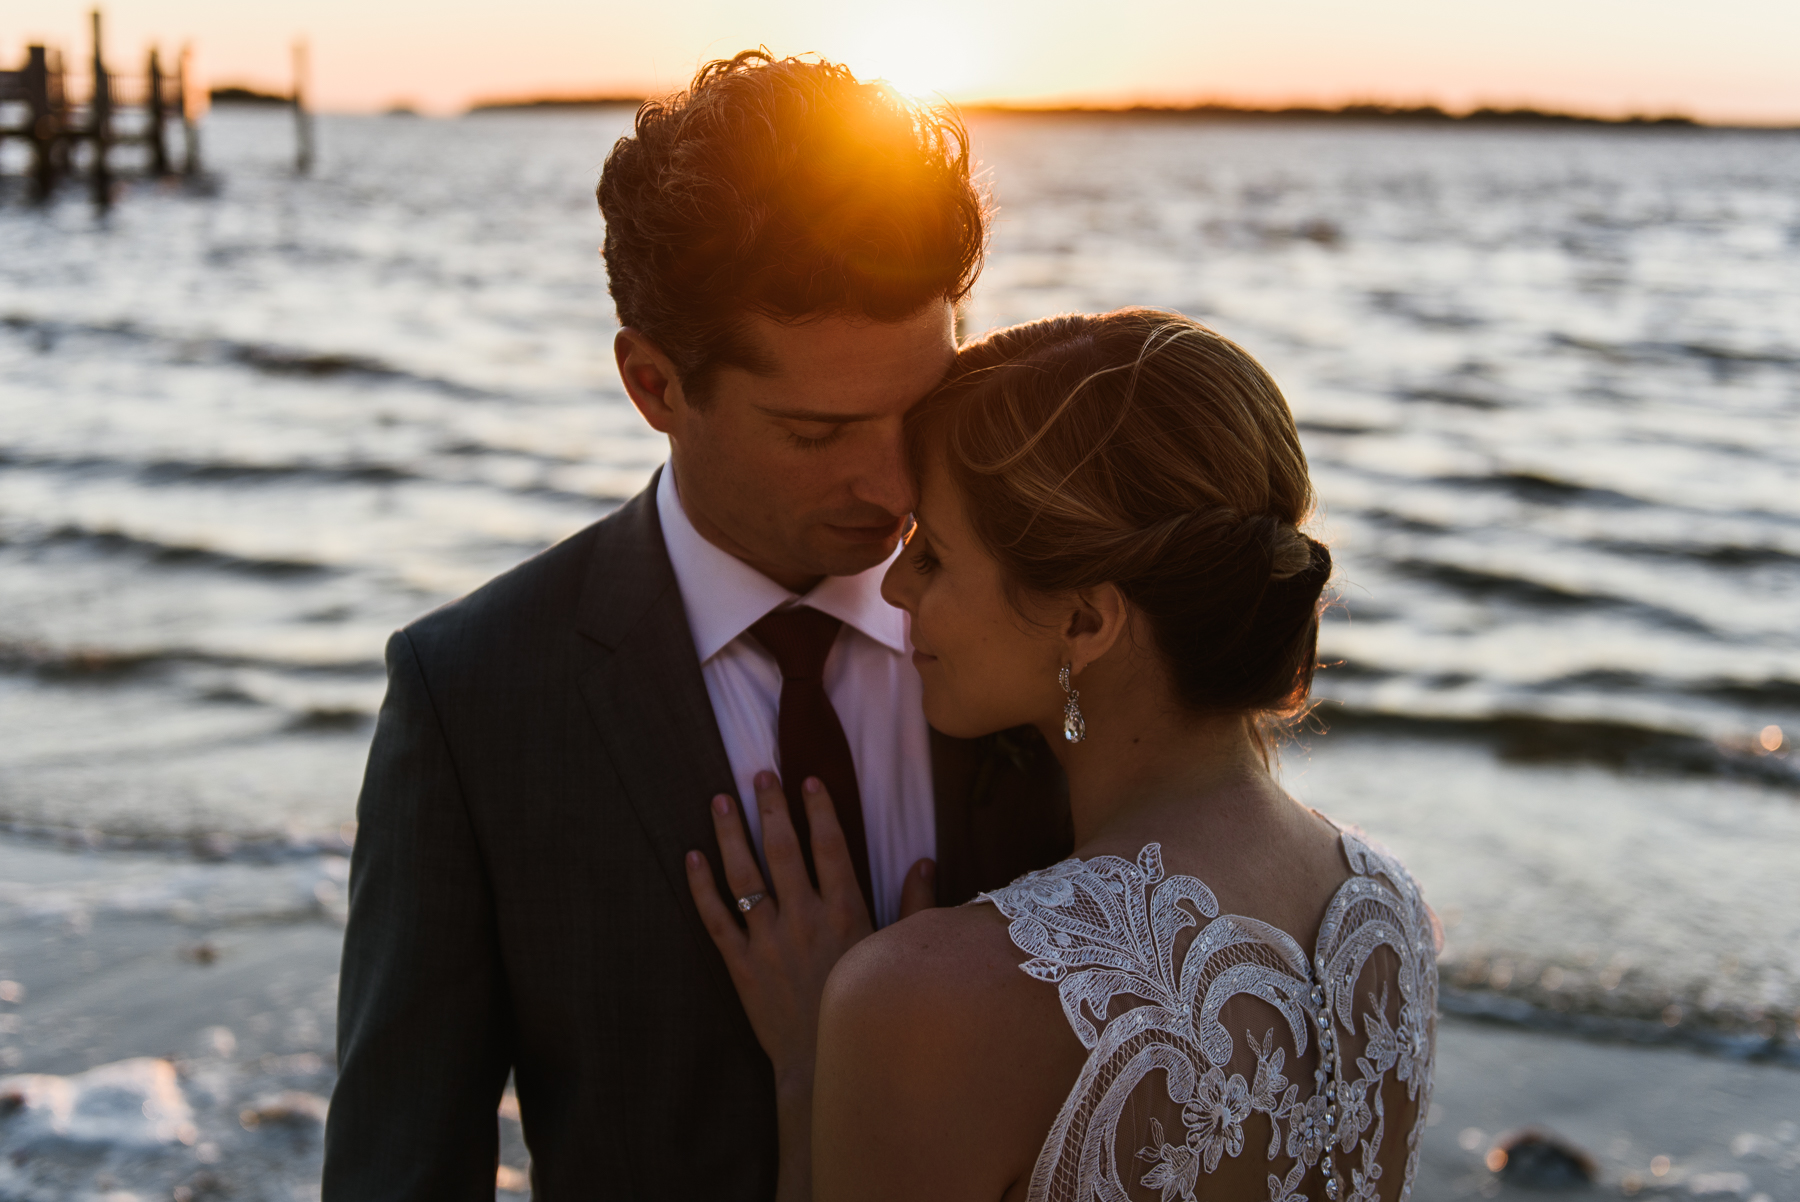 sanibel romantic sunset wedding portrait